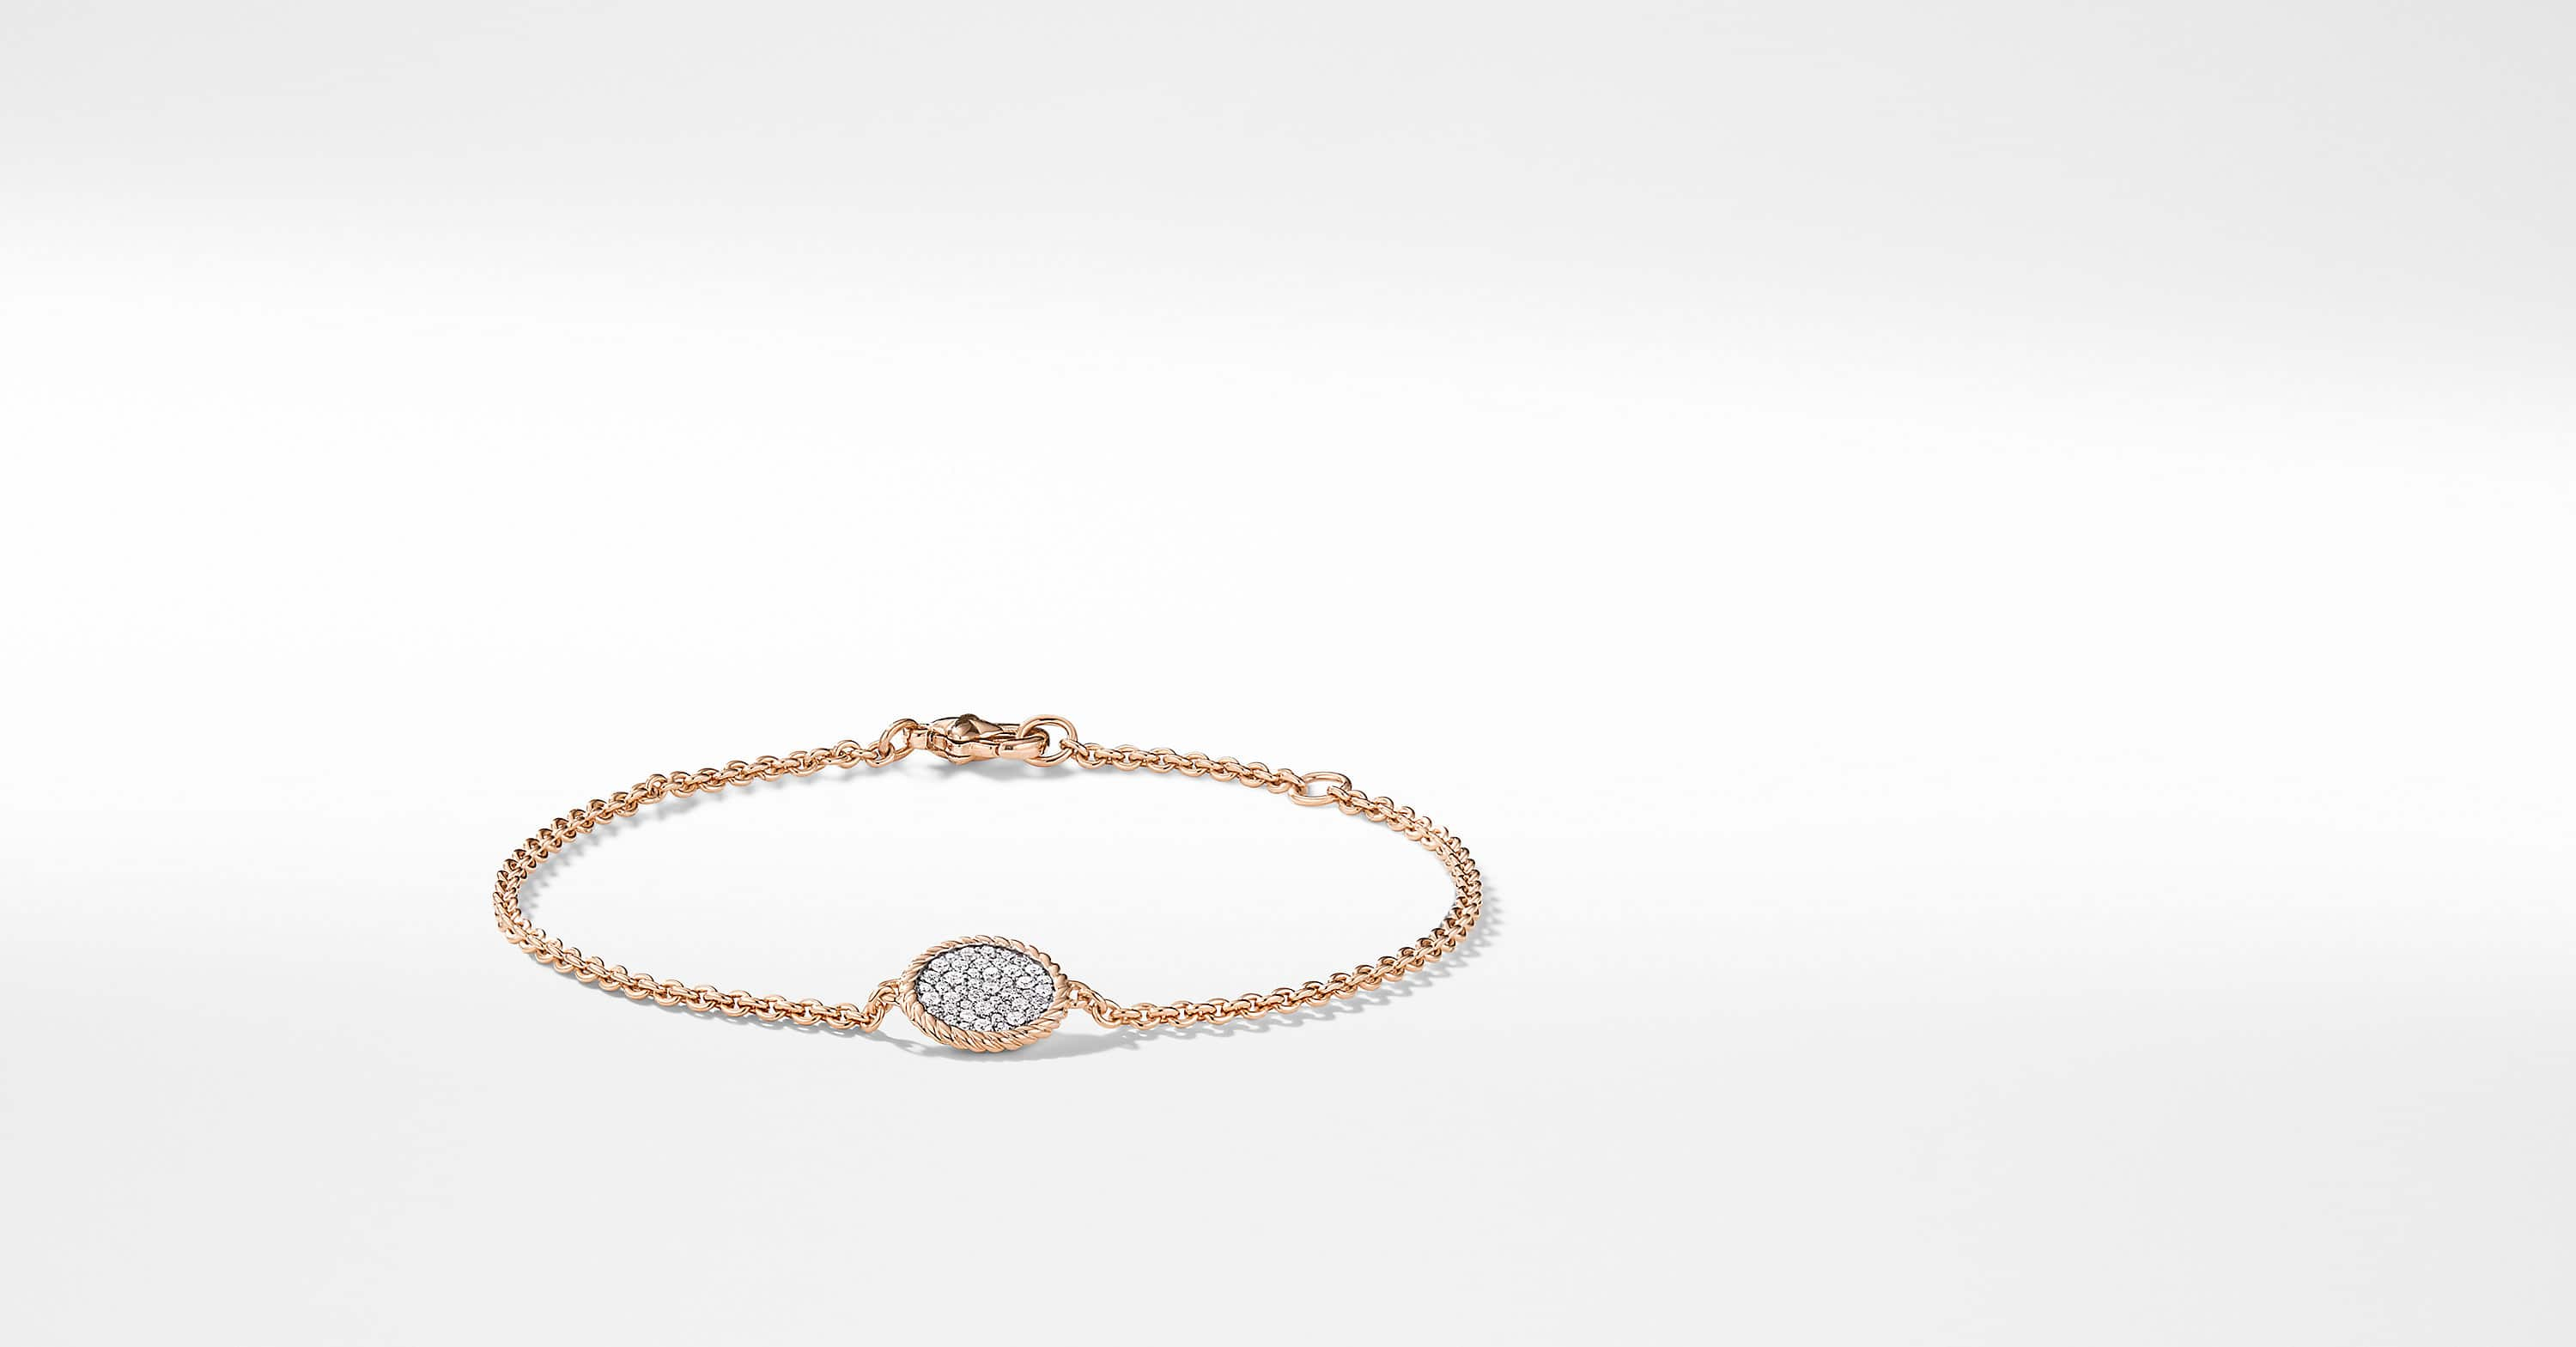 Bracelet « Cable » Collectibles en or rose 18 carats et diamants